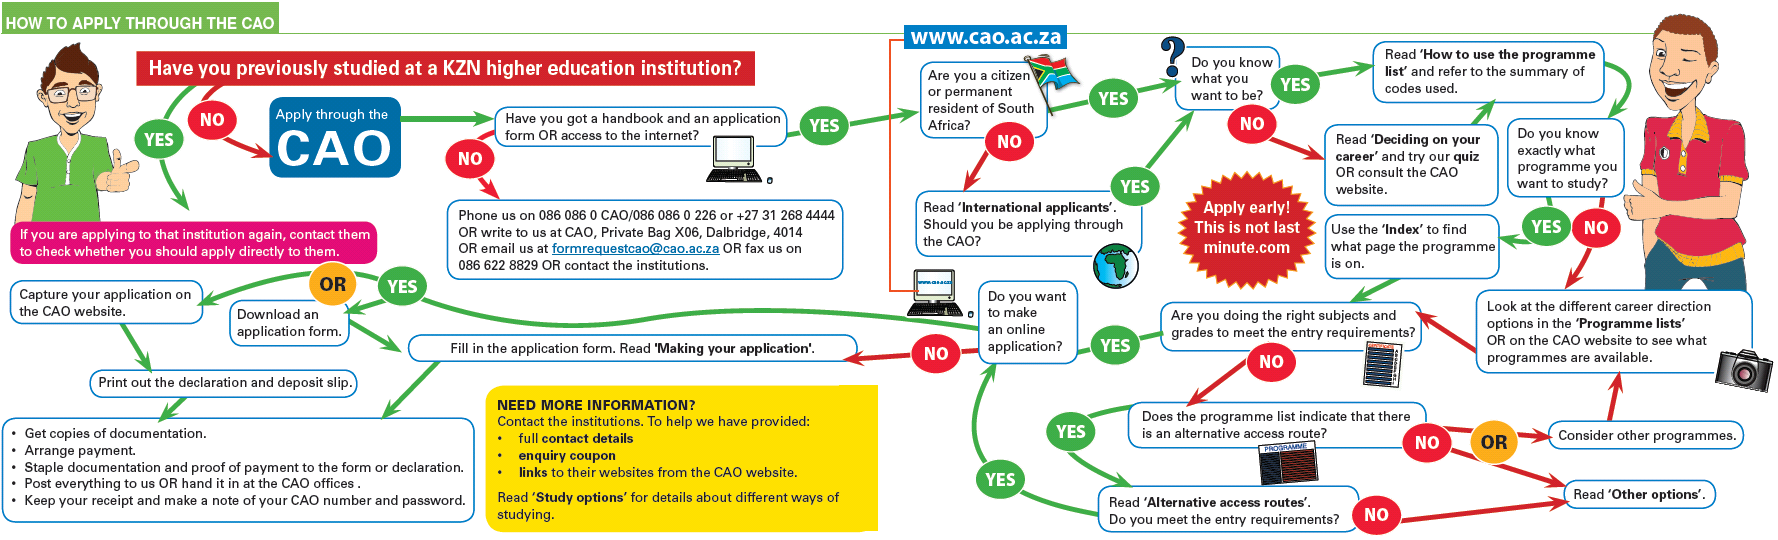 How to Apply to CAO